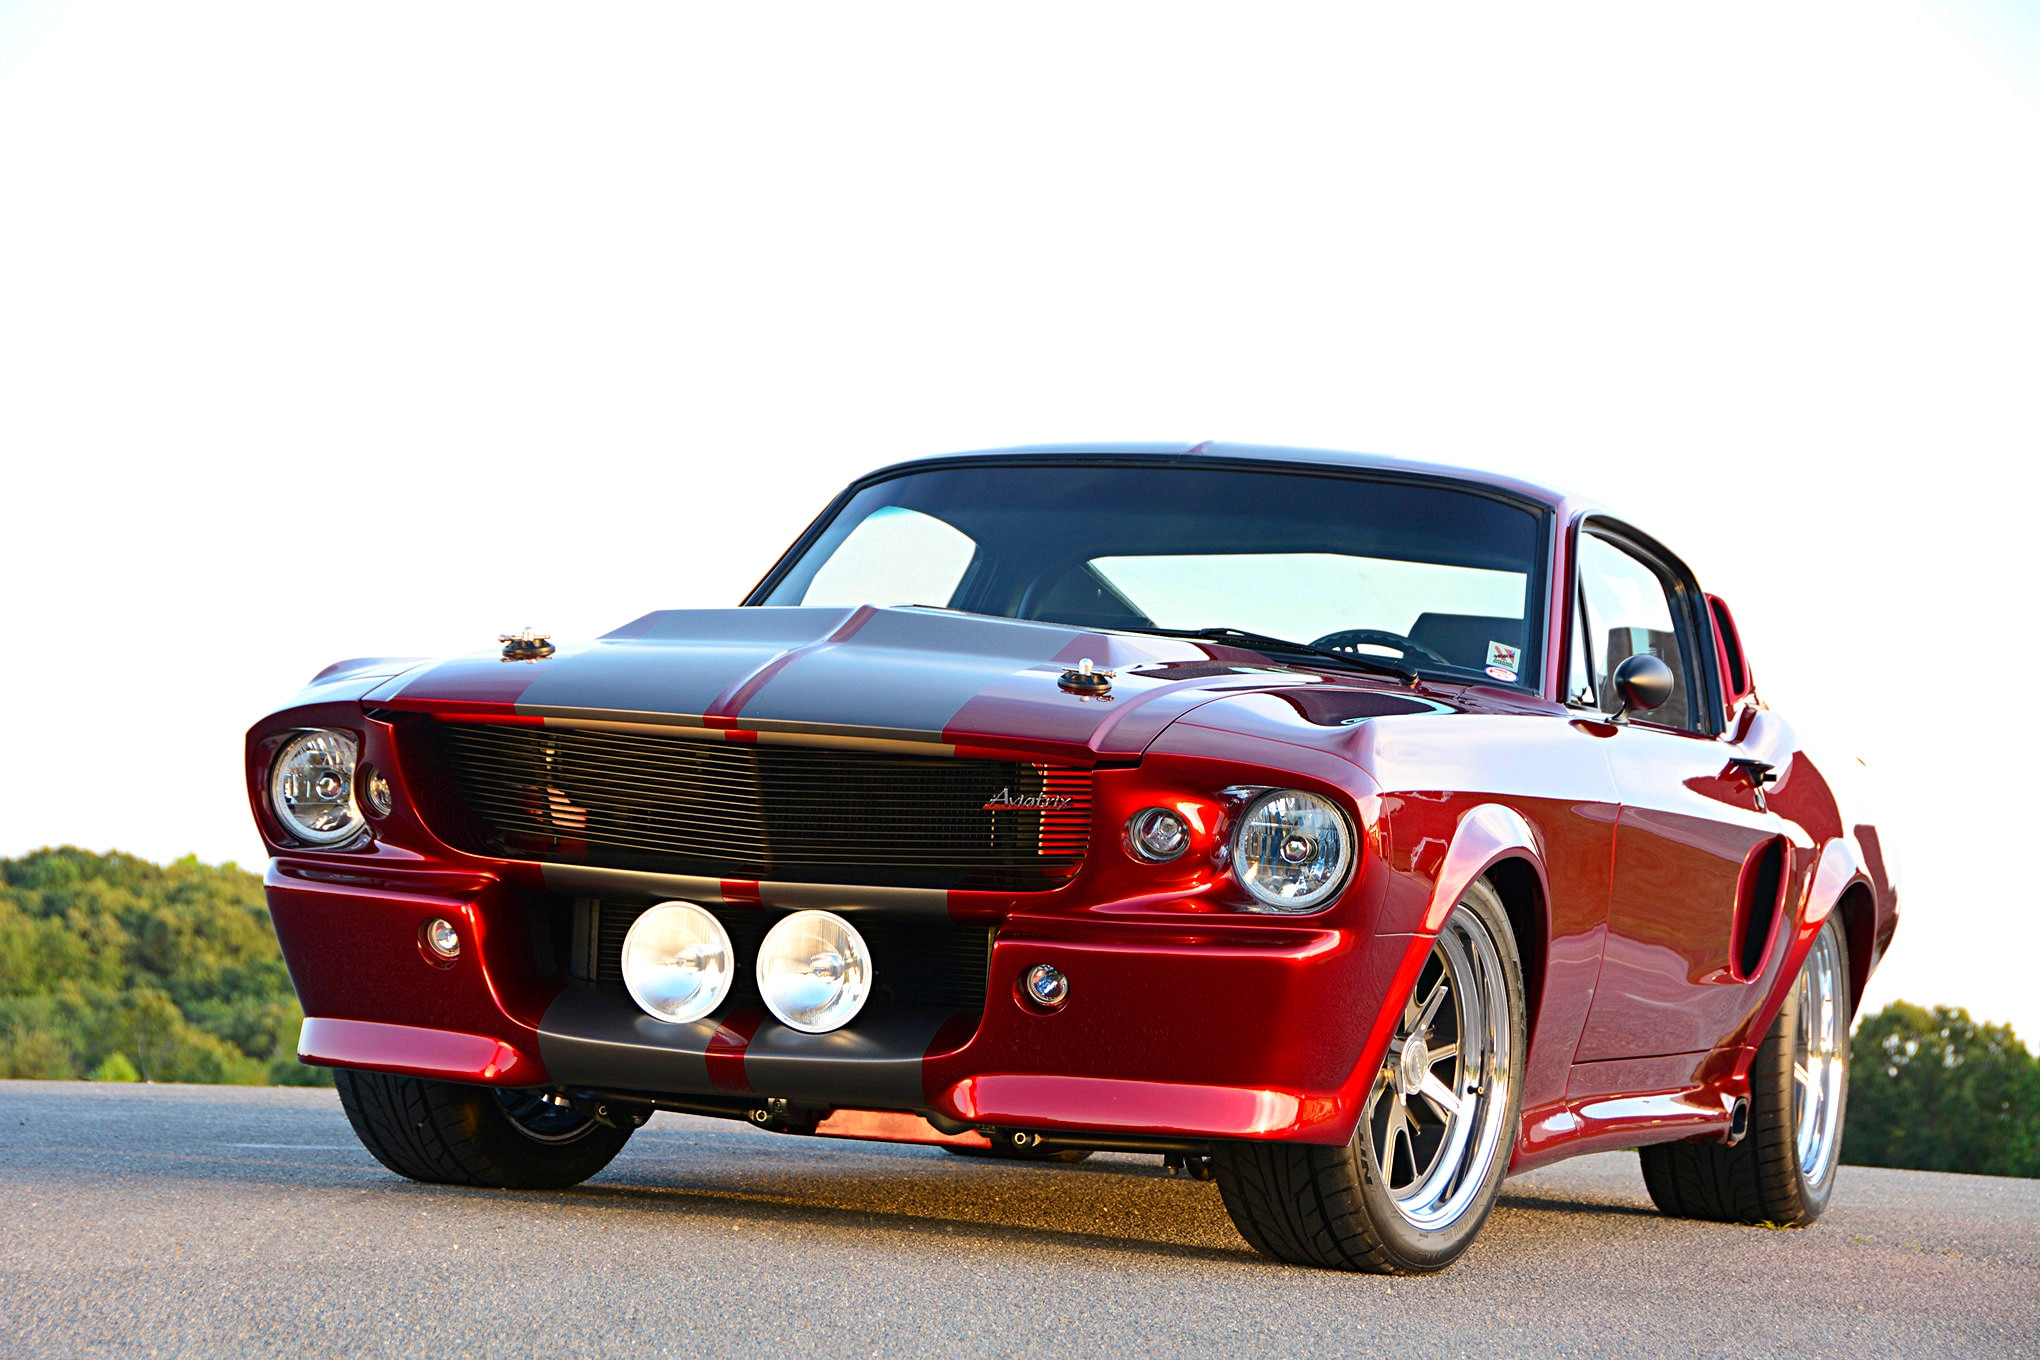 Slathered in candy-apple-red paint, this 1967 Mustang body is modified from front to back, but it still retains the classic Eleanor styling that Amy wanted. B Rod or Custom handled the build and scratch-built the fenders, hood, and many other body panels from fiberglass.